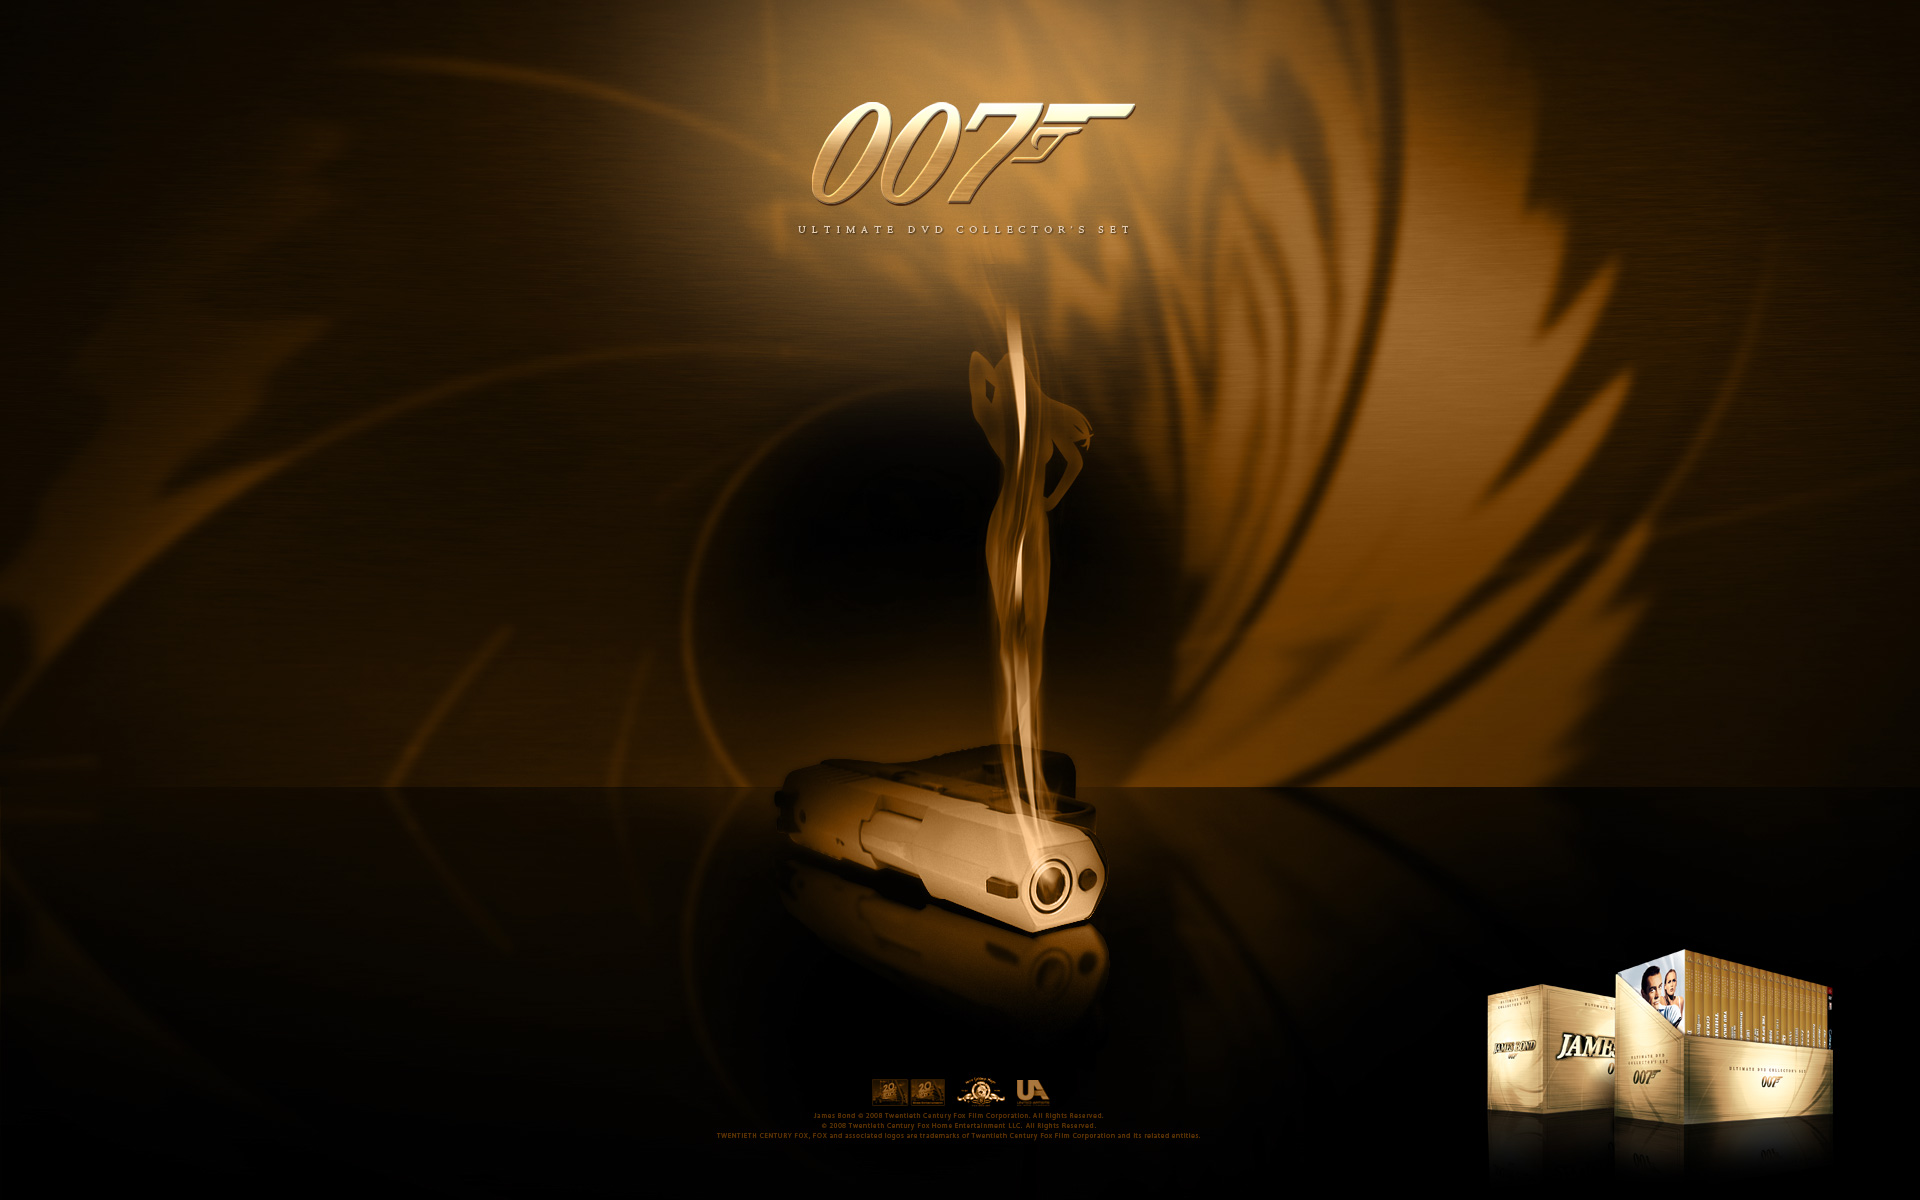 james bond widescreen DVD1 1920x1200